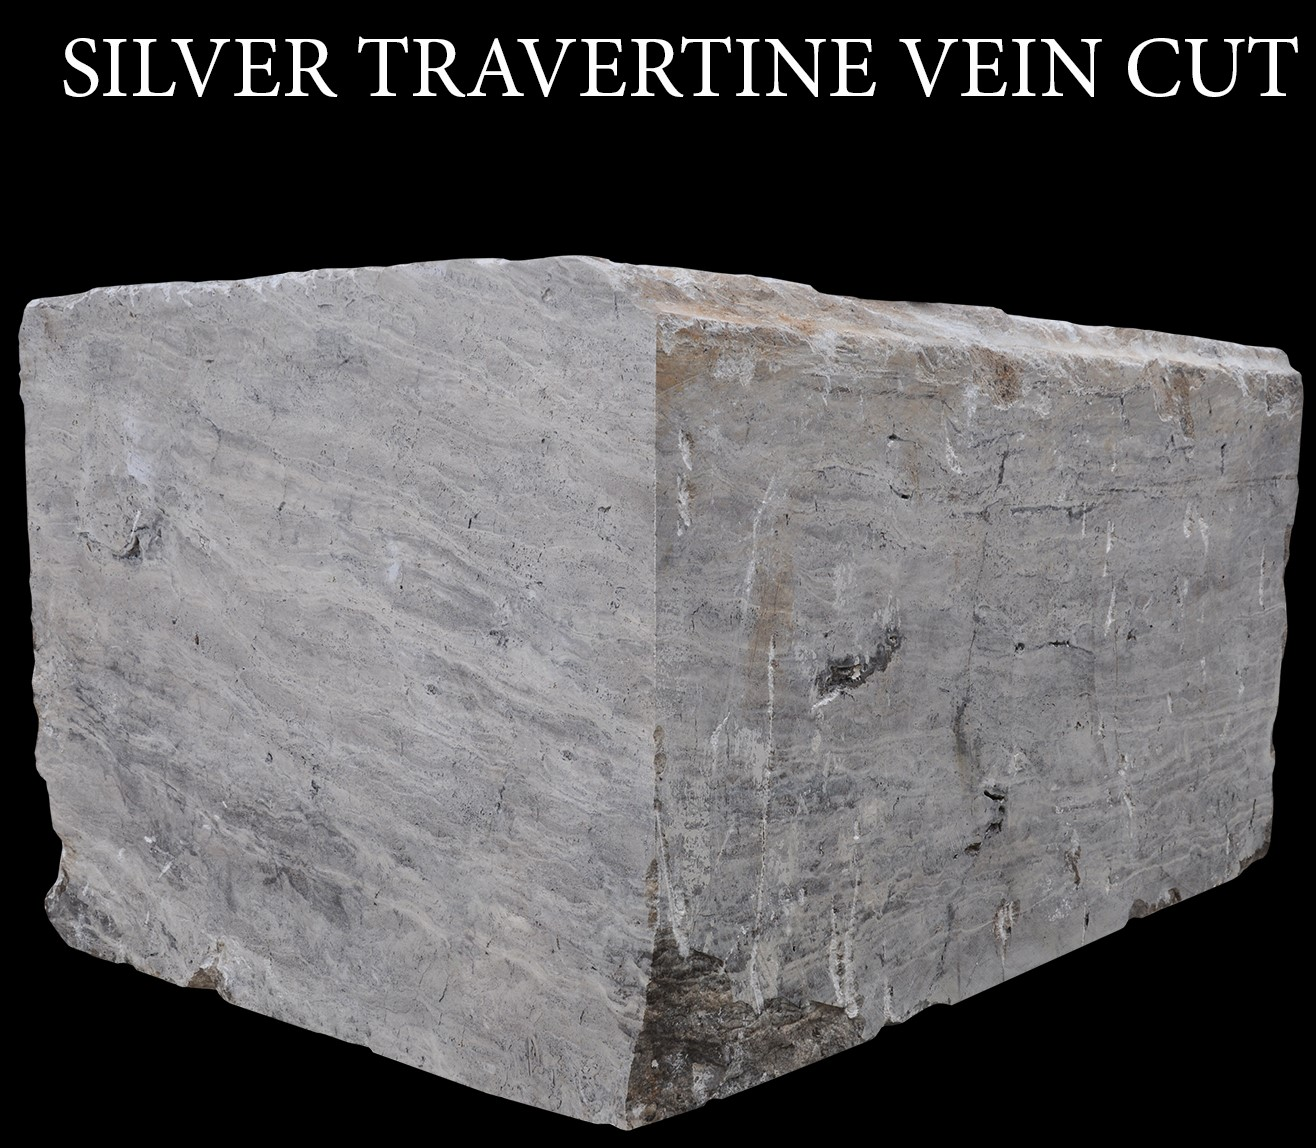 Silver Travertine Vein Cut Blocks  Grey Travertine Vein Cut Blocks